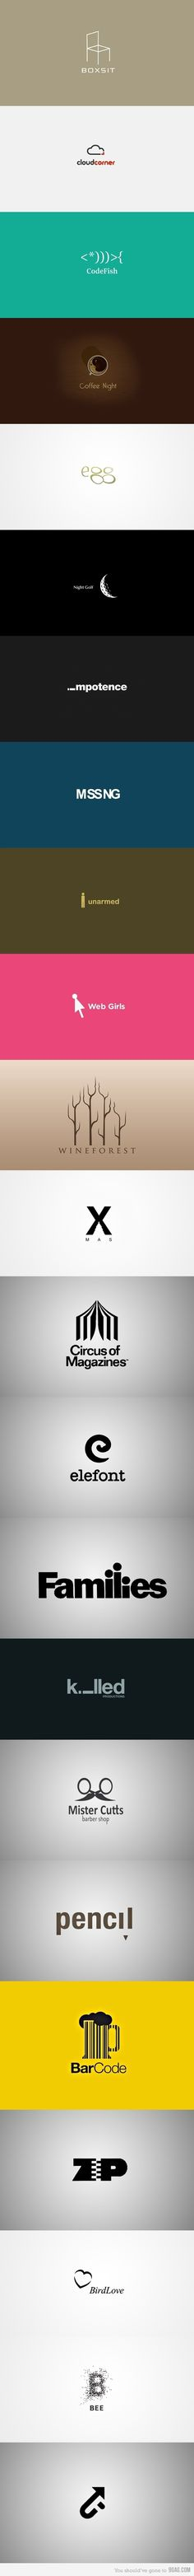 Logo inspiration #logos #design #graphic